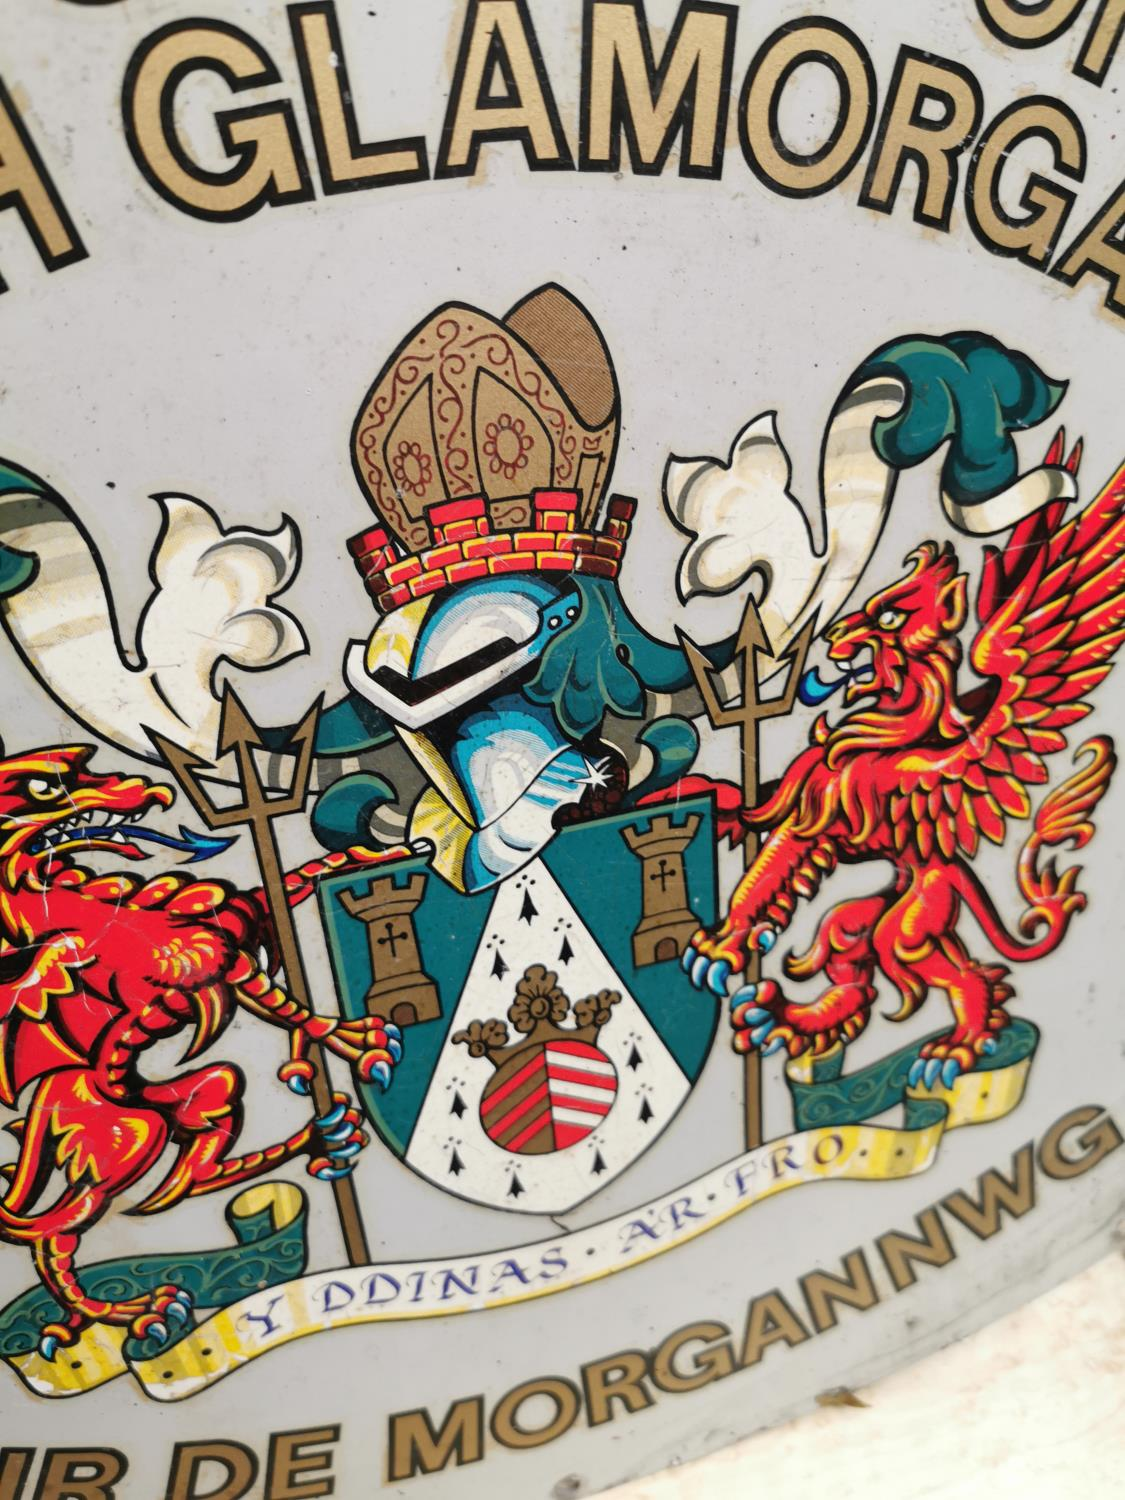 The CC of South Glamorgan advertising sign. - Image 2 of 2